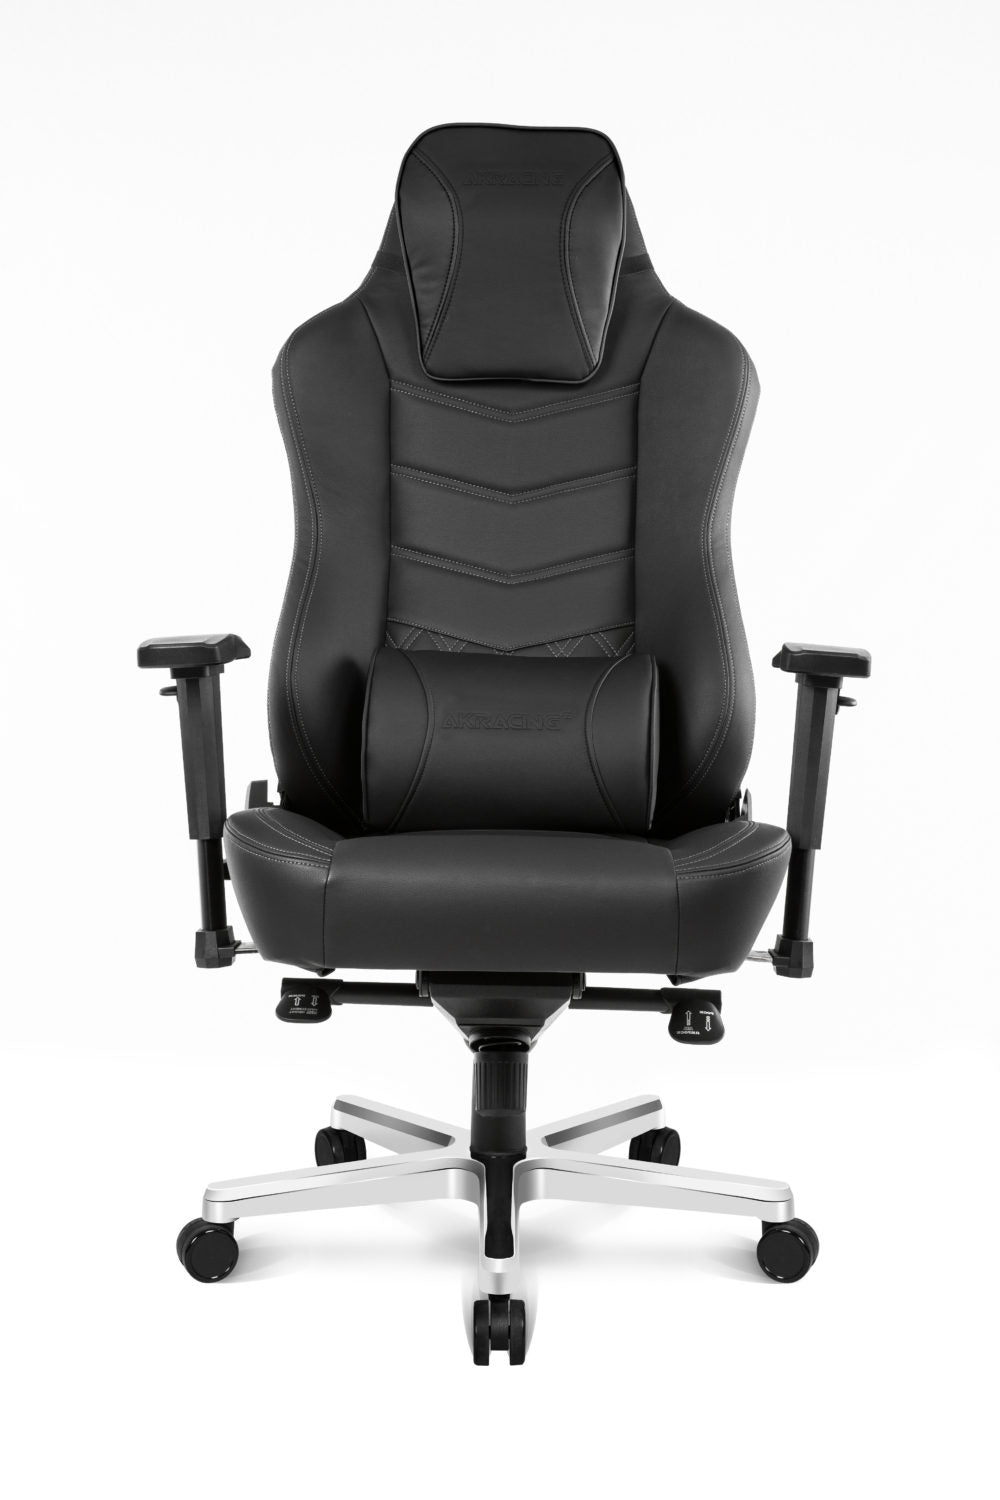 OFFICE SERIES: ONYX Deluxe